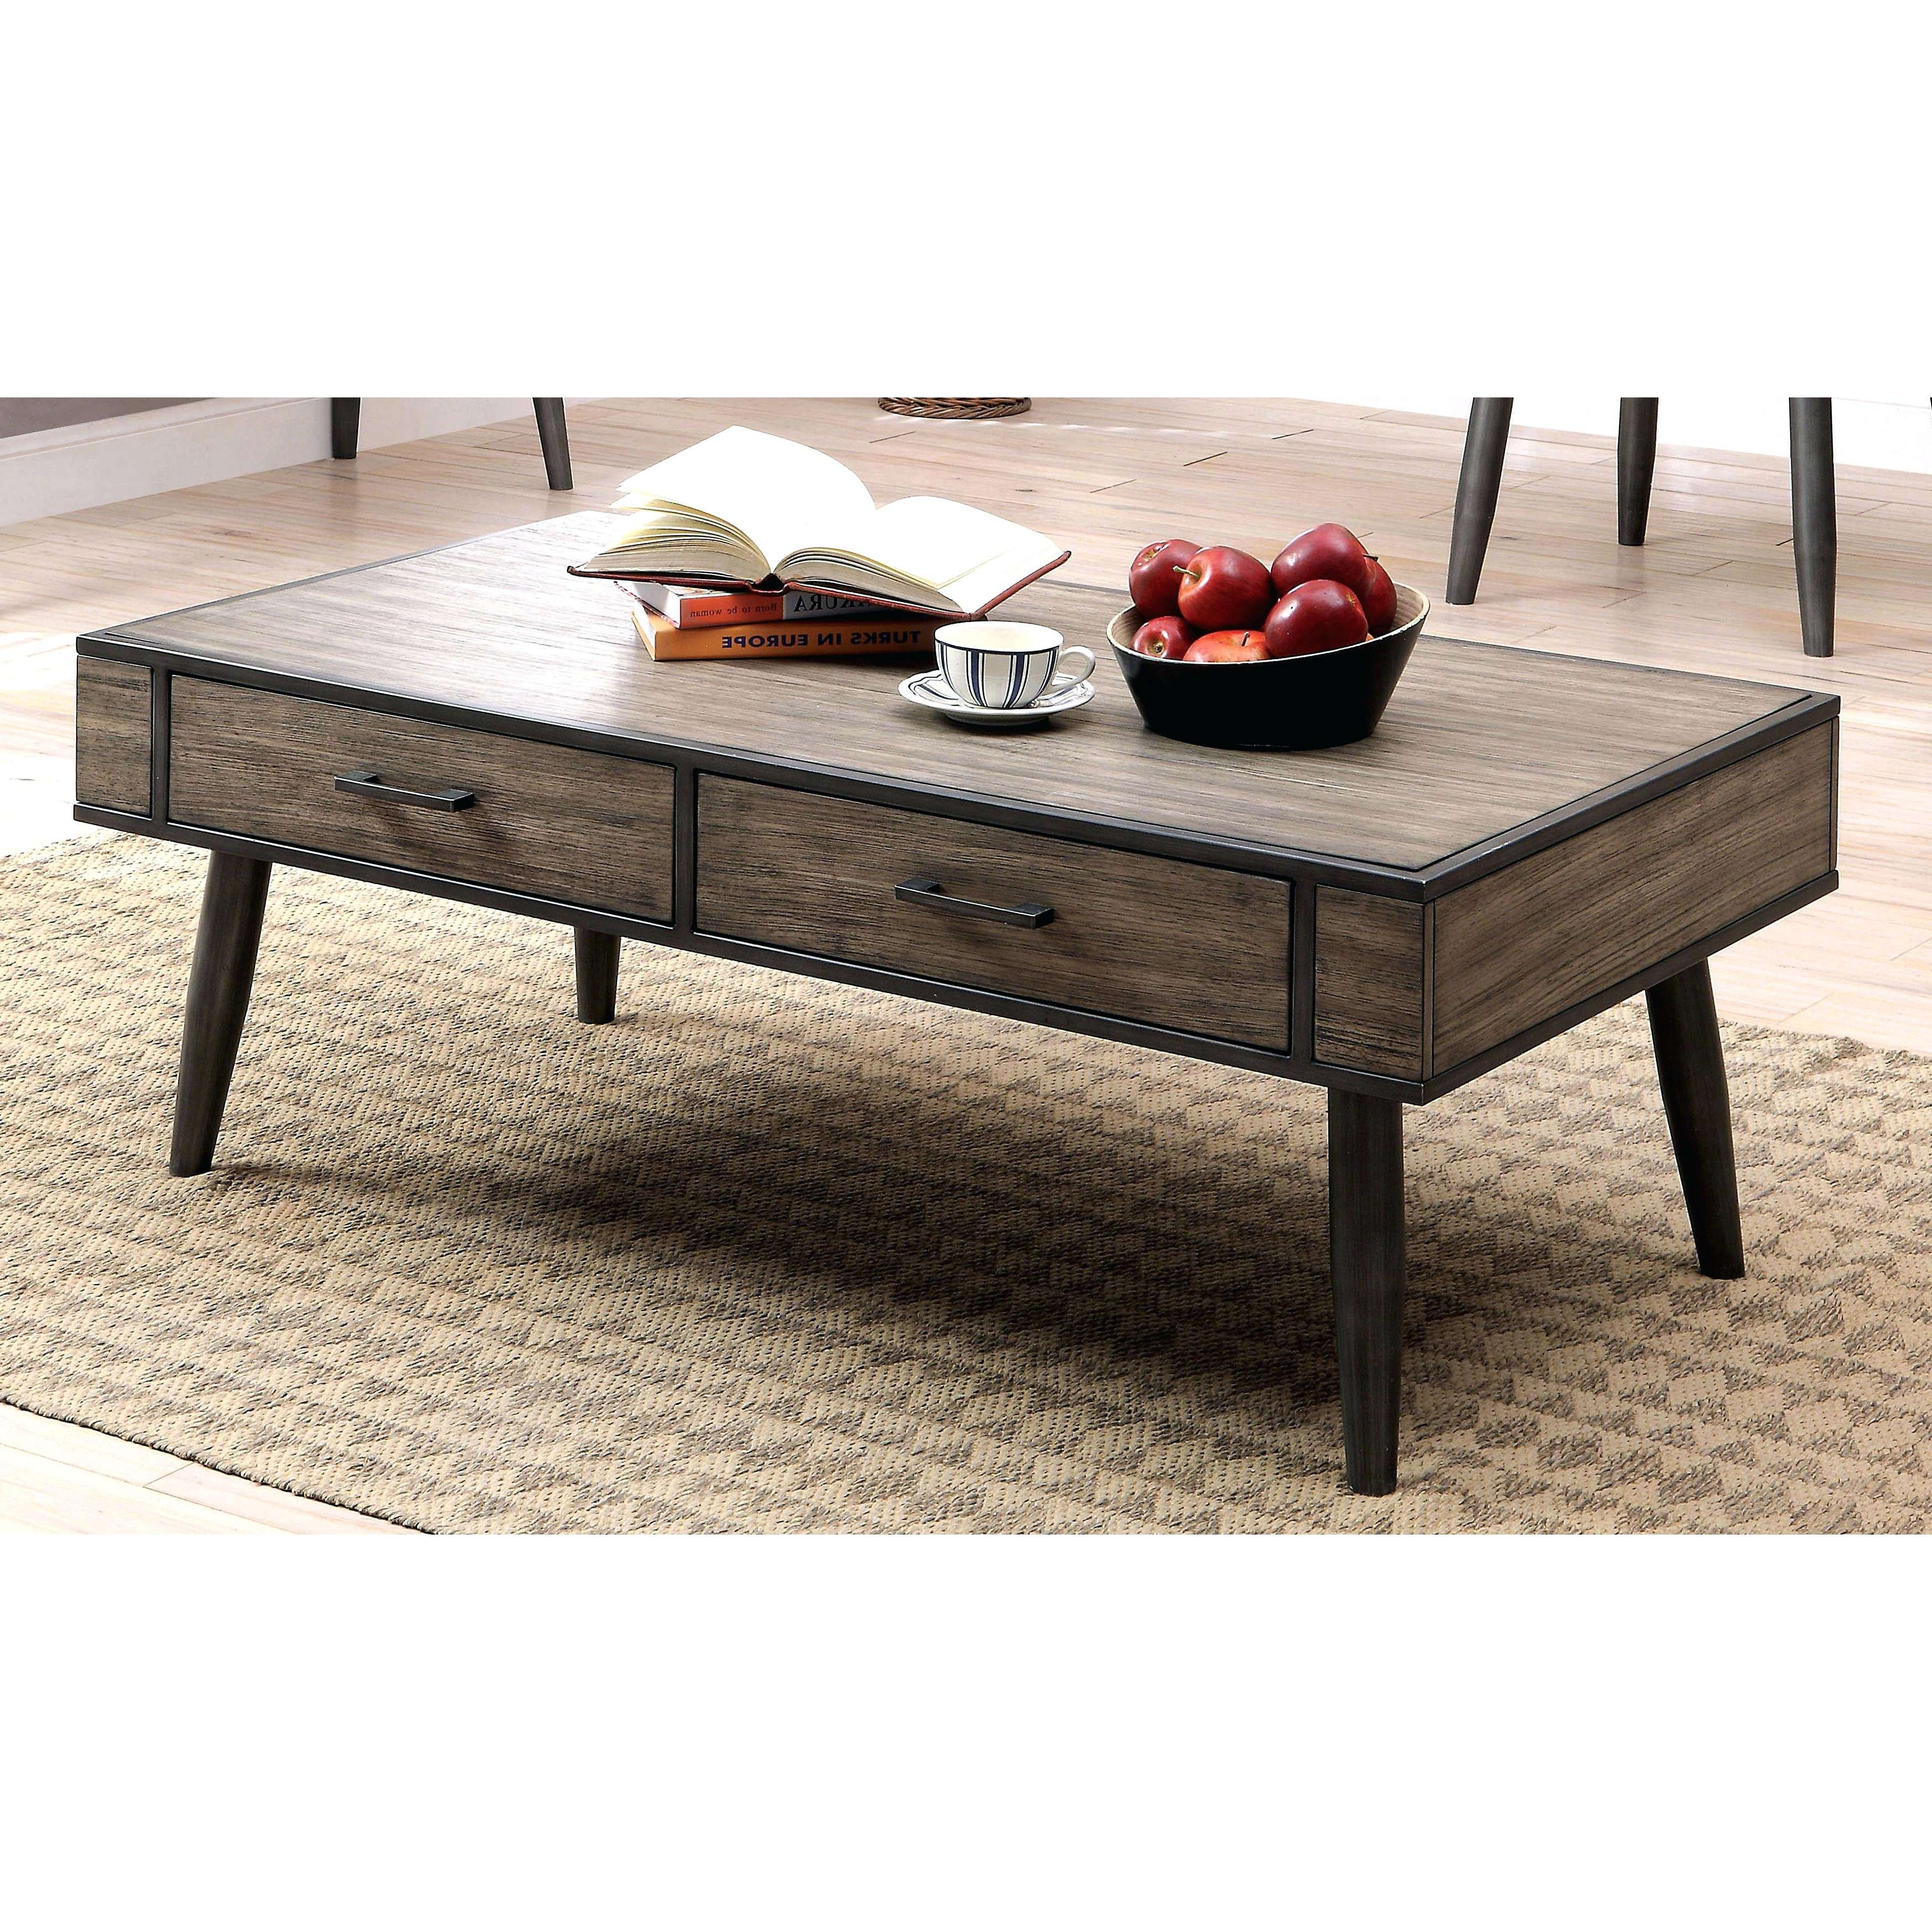 Coffee Tables : Furniture Of Mid Century Modern Industrial Style Pertaining To Recent Coffee Table Industrial Style (View 20 of 20)